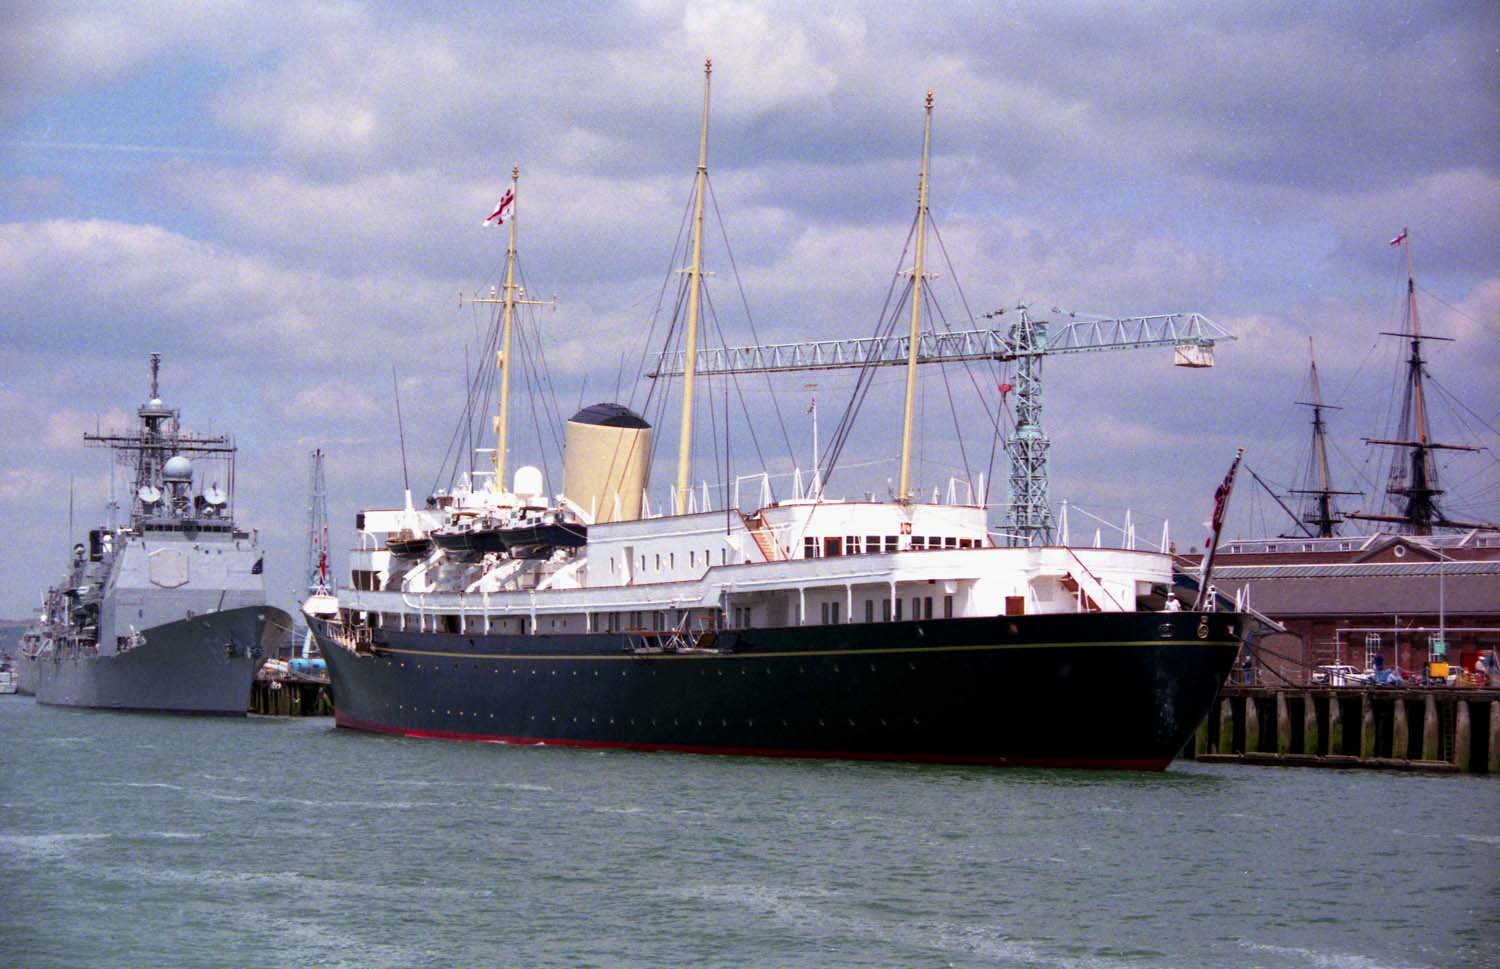 The_Royal_Yacht_Britannia_in_Portsmouth_-_geograph.org.uk_-_1702549